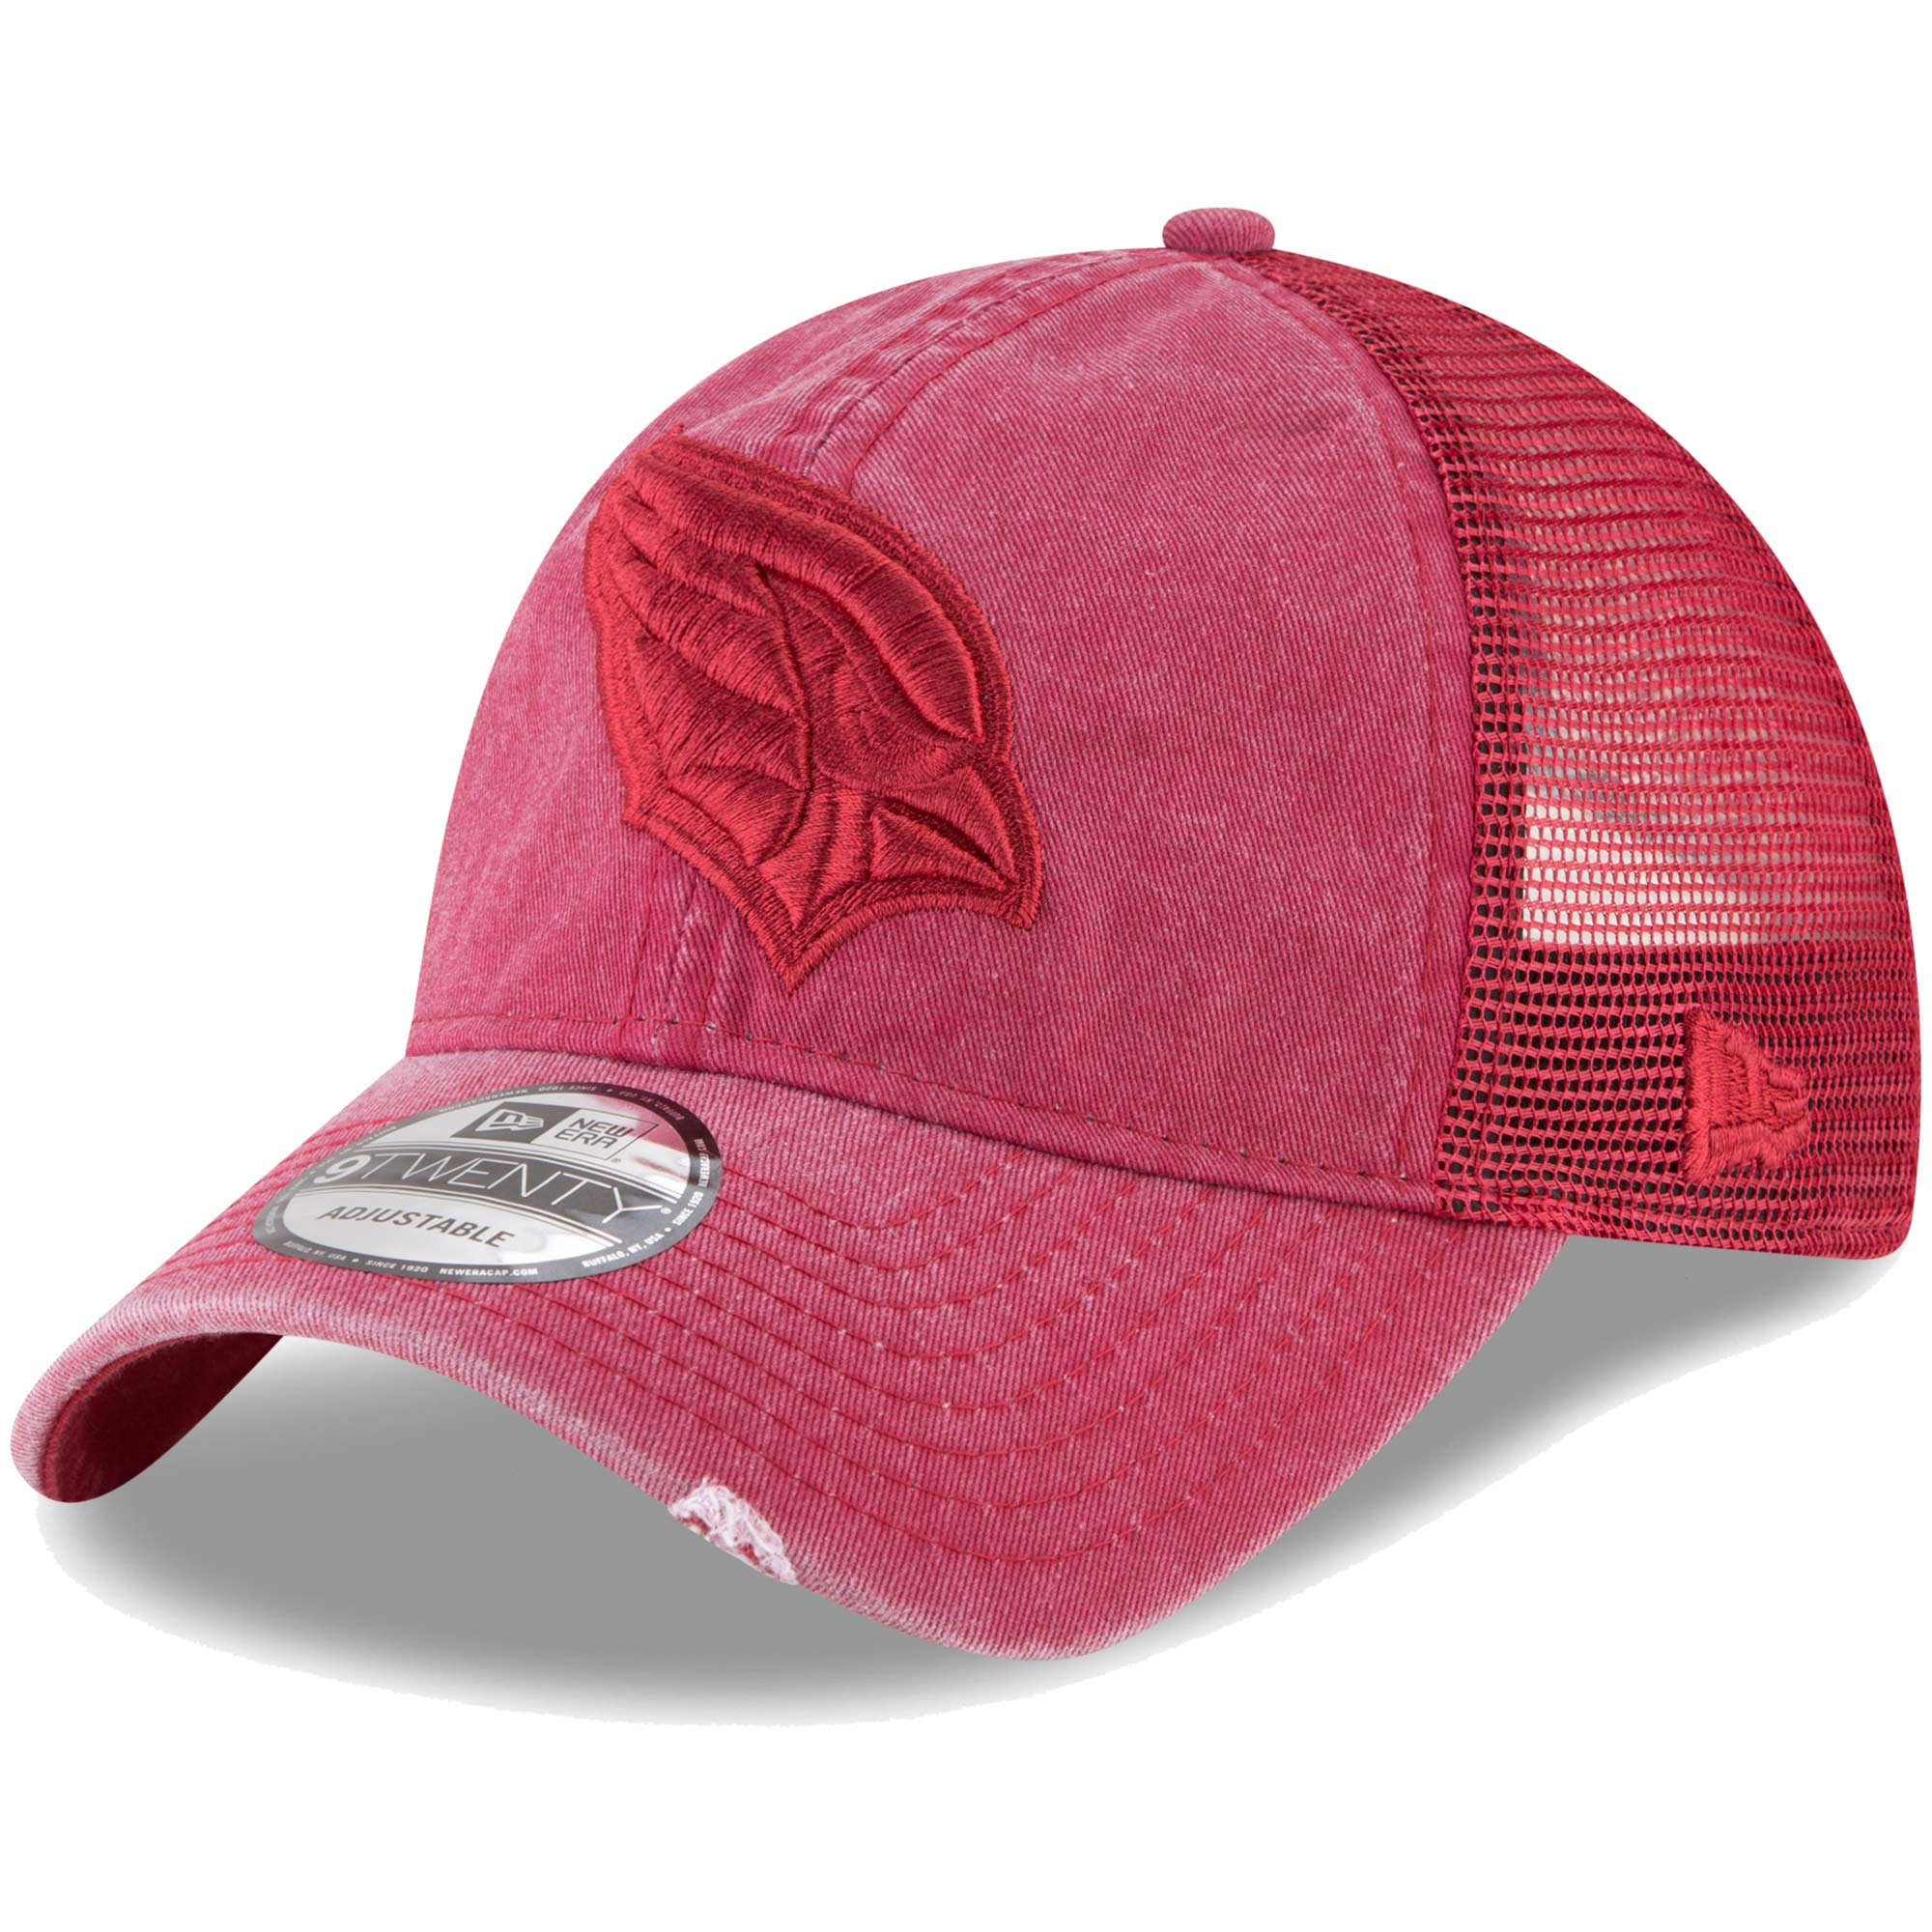 Arizona Cardinals New Era Tonal Washed Trucker 9TWENTY Adjustable Snapback Hat - Cardinal